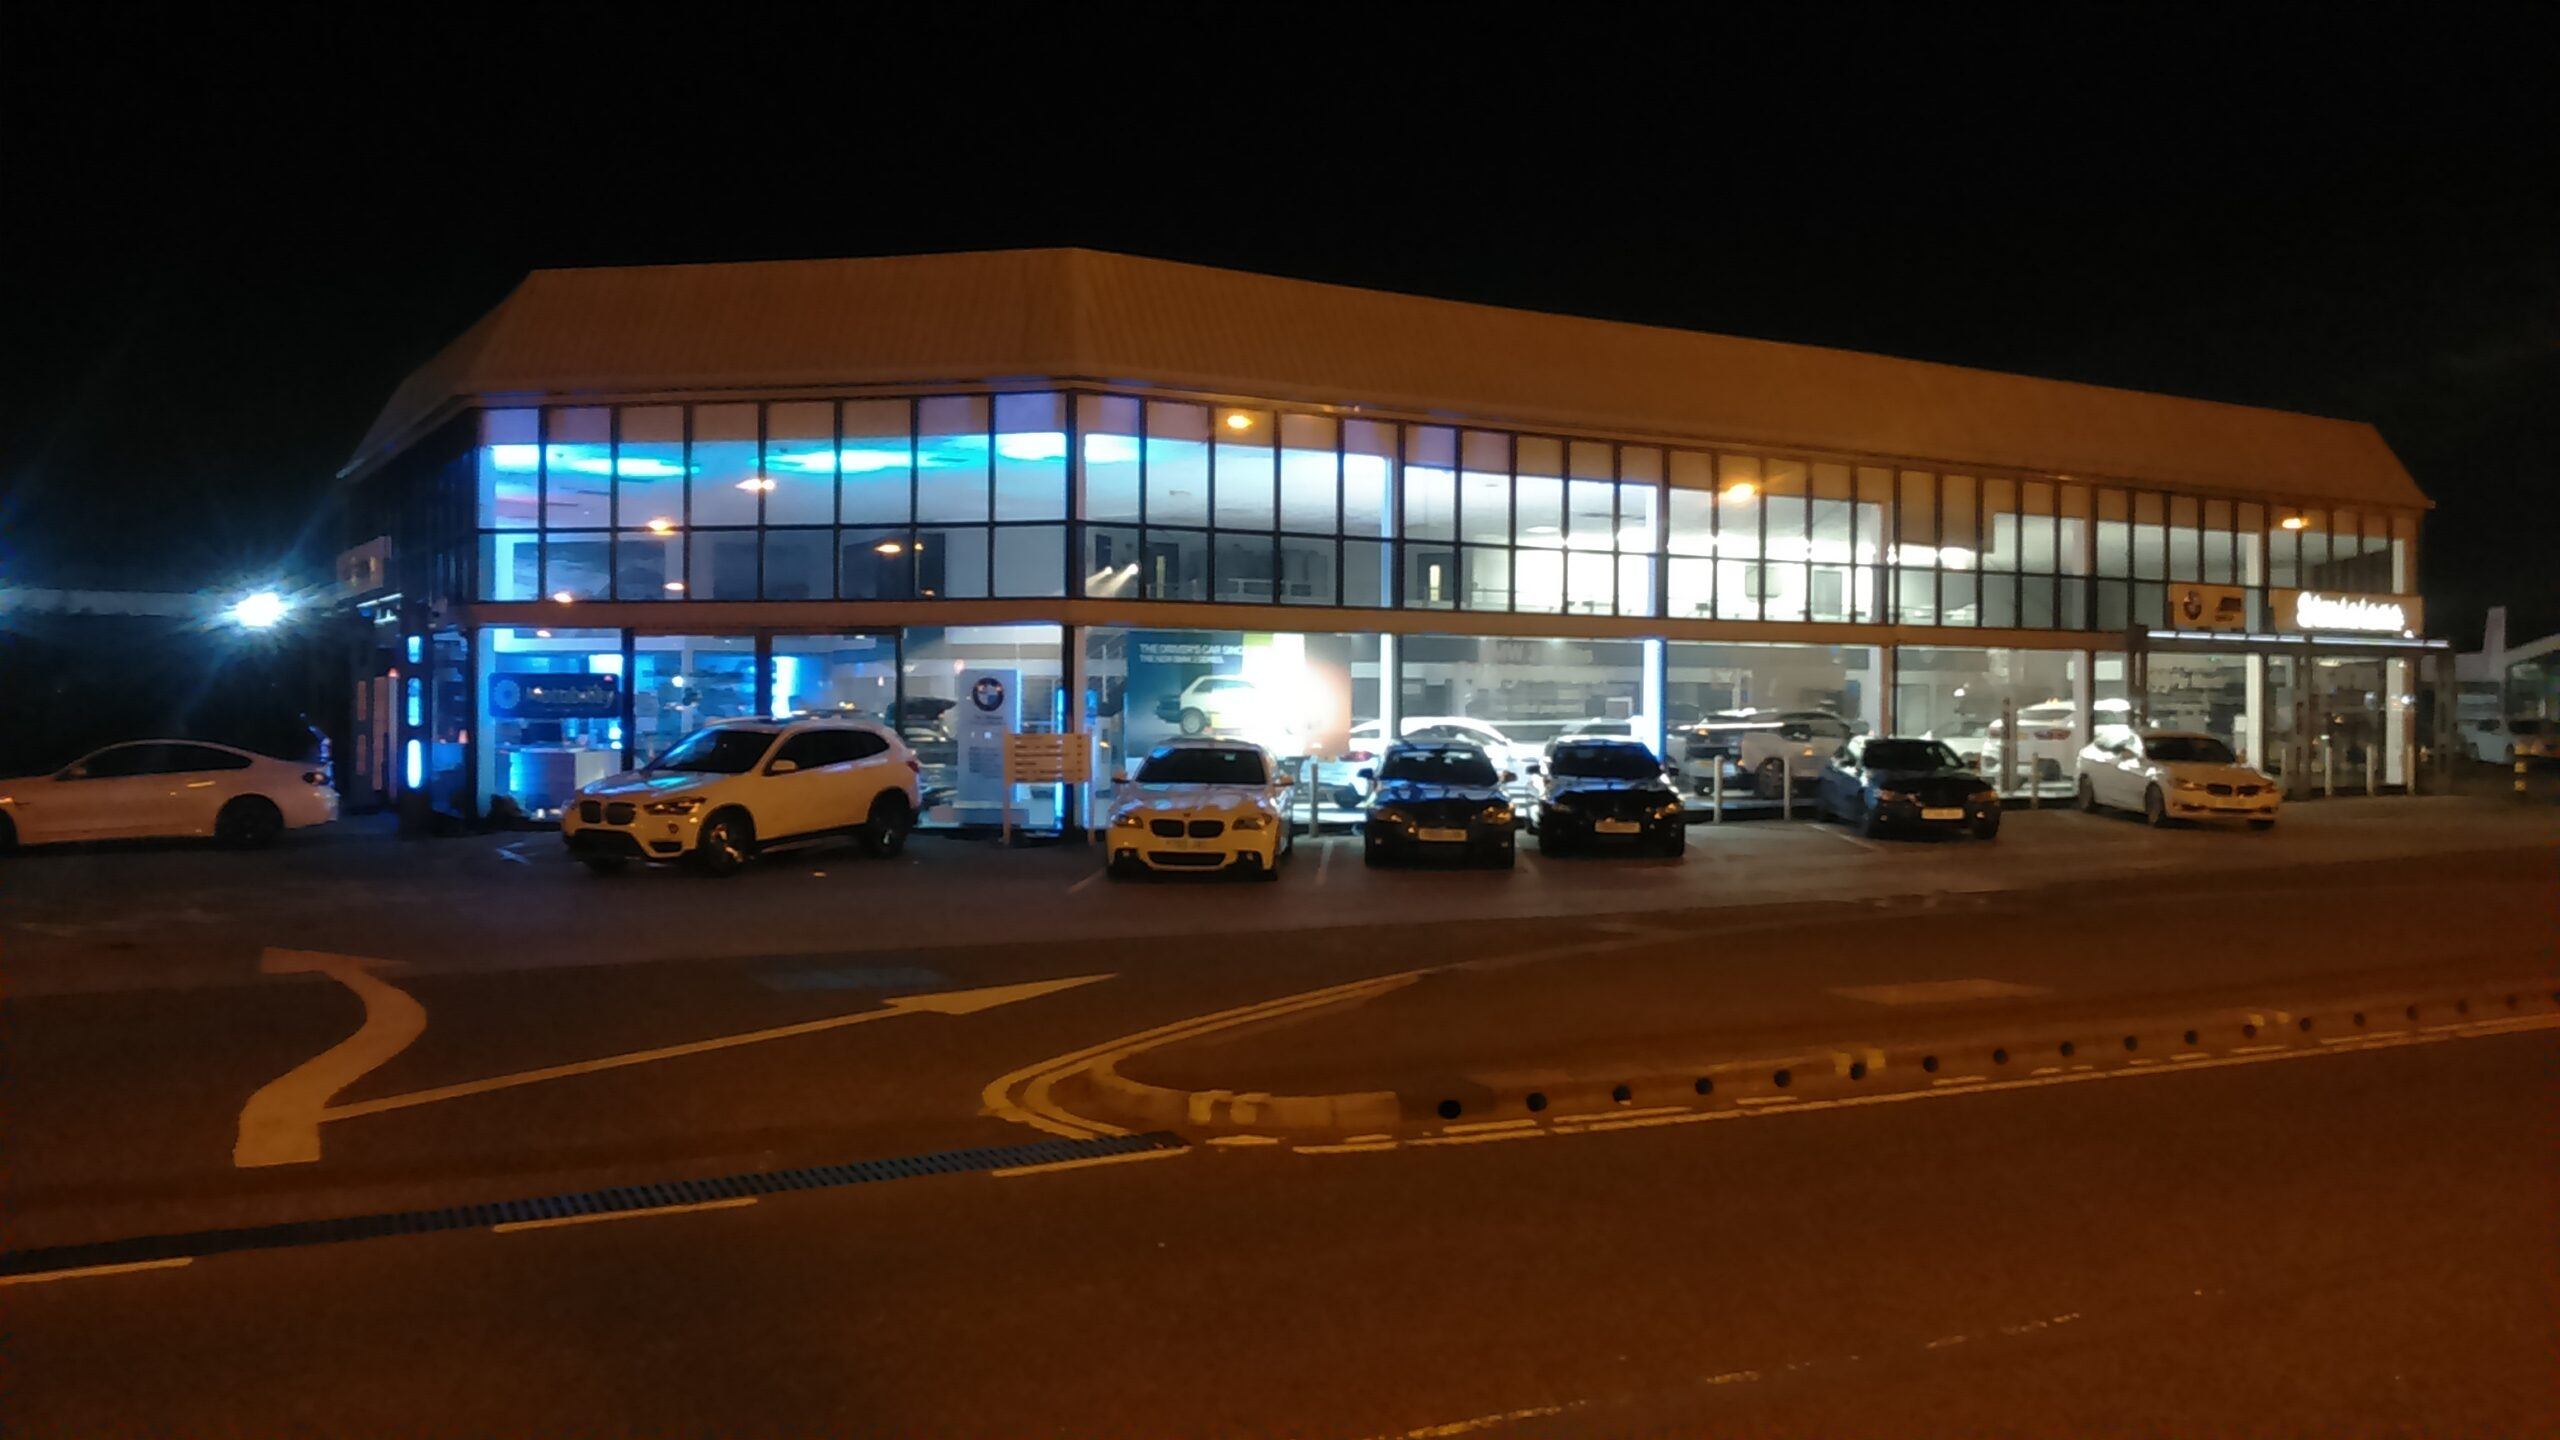 EES Showhire lit the Doncaster based car dealership showroom in BMW colours.